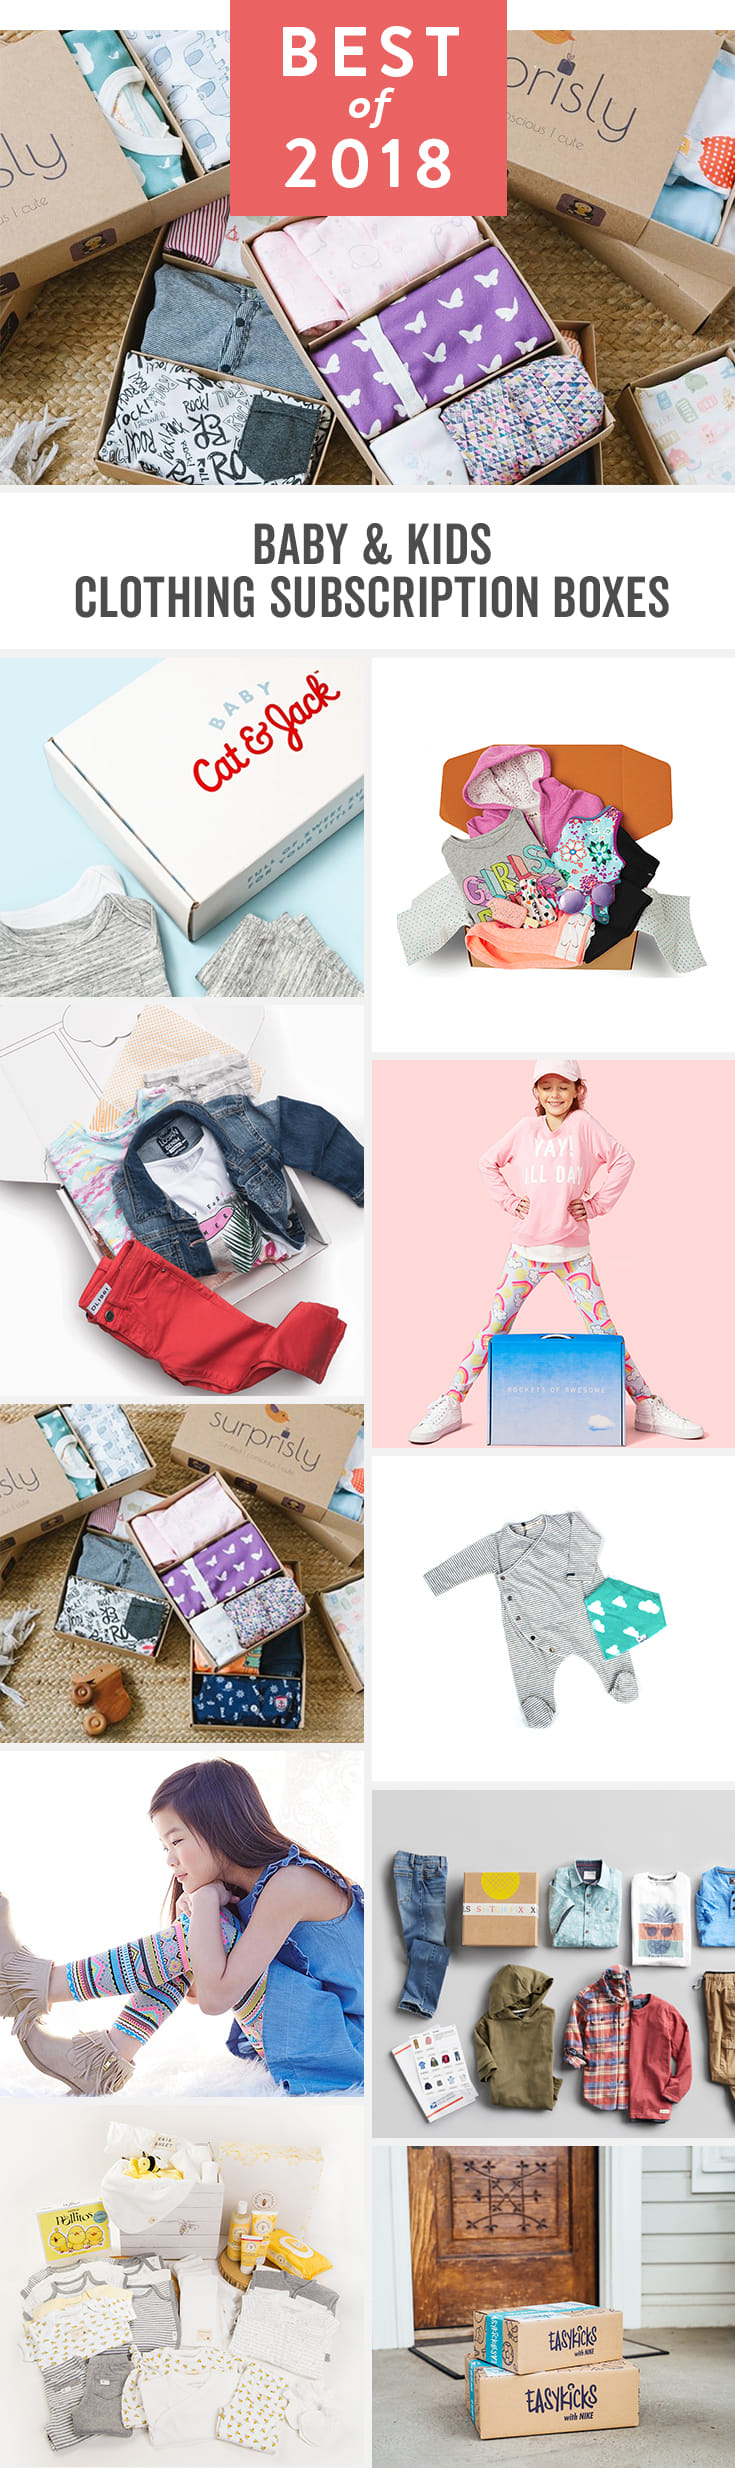 Best Clothing Subscription Boxes 2021 11 Best Baby and Kids Clothing Subscription Boxes of 2020